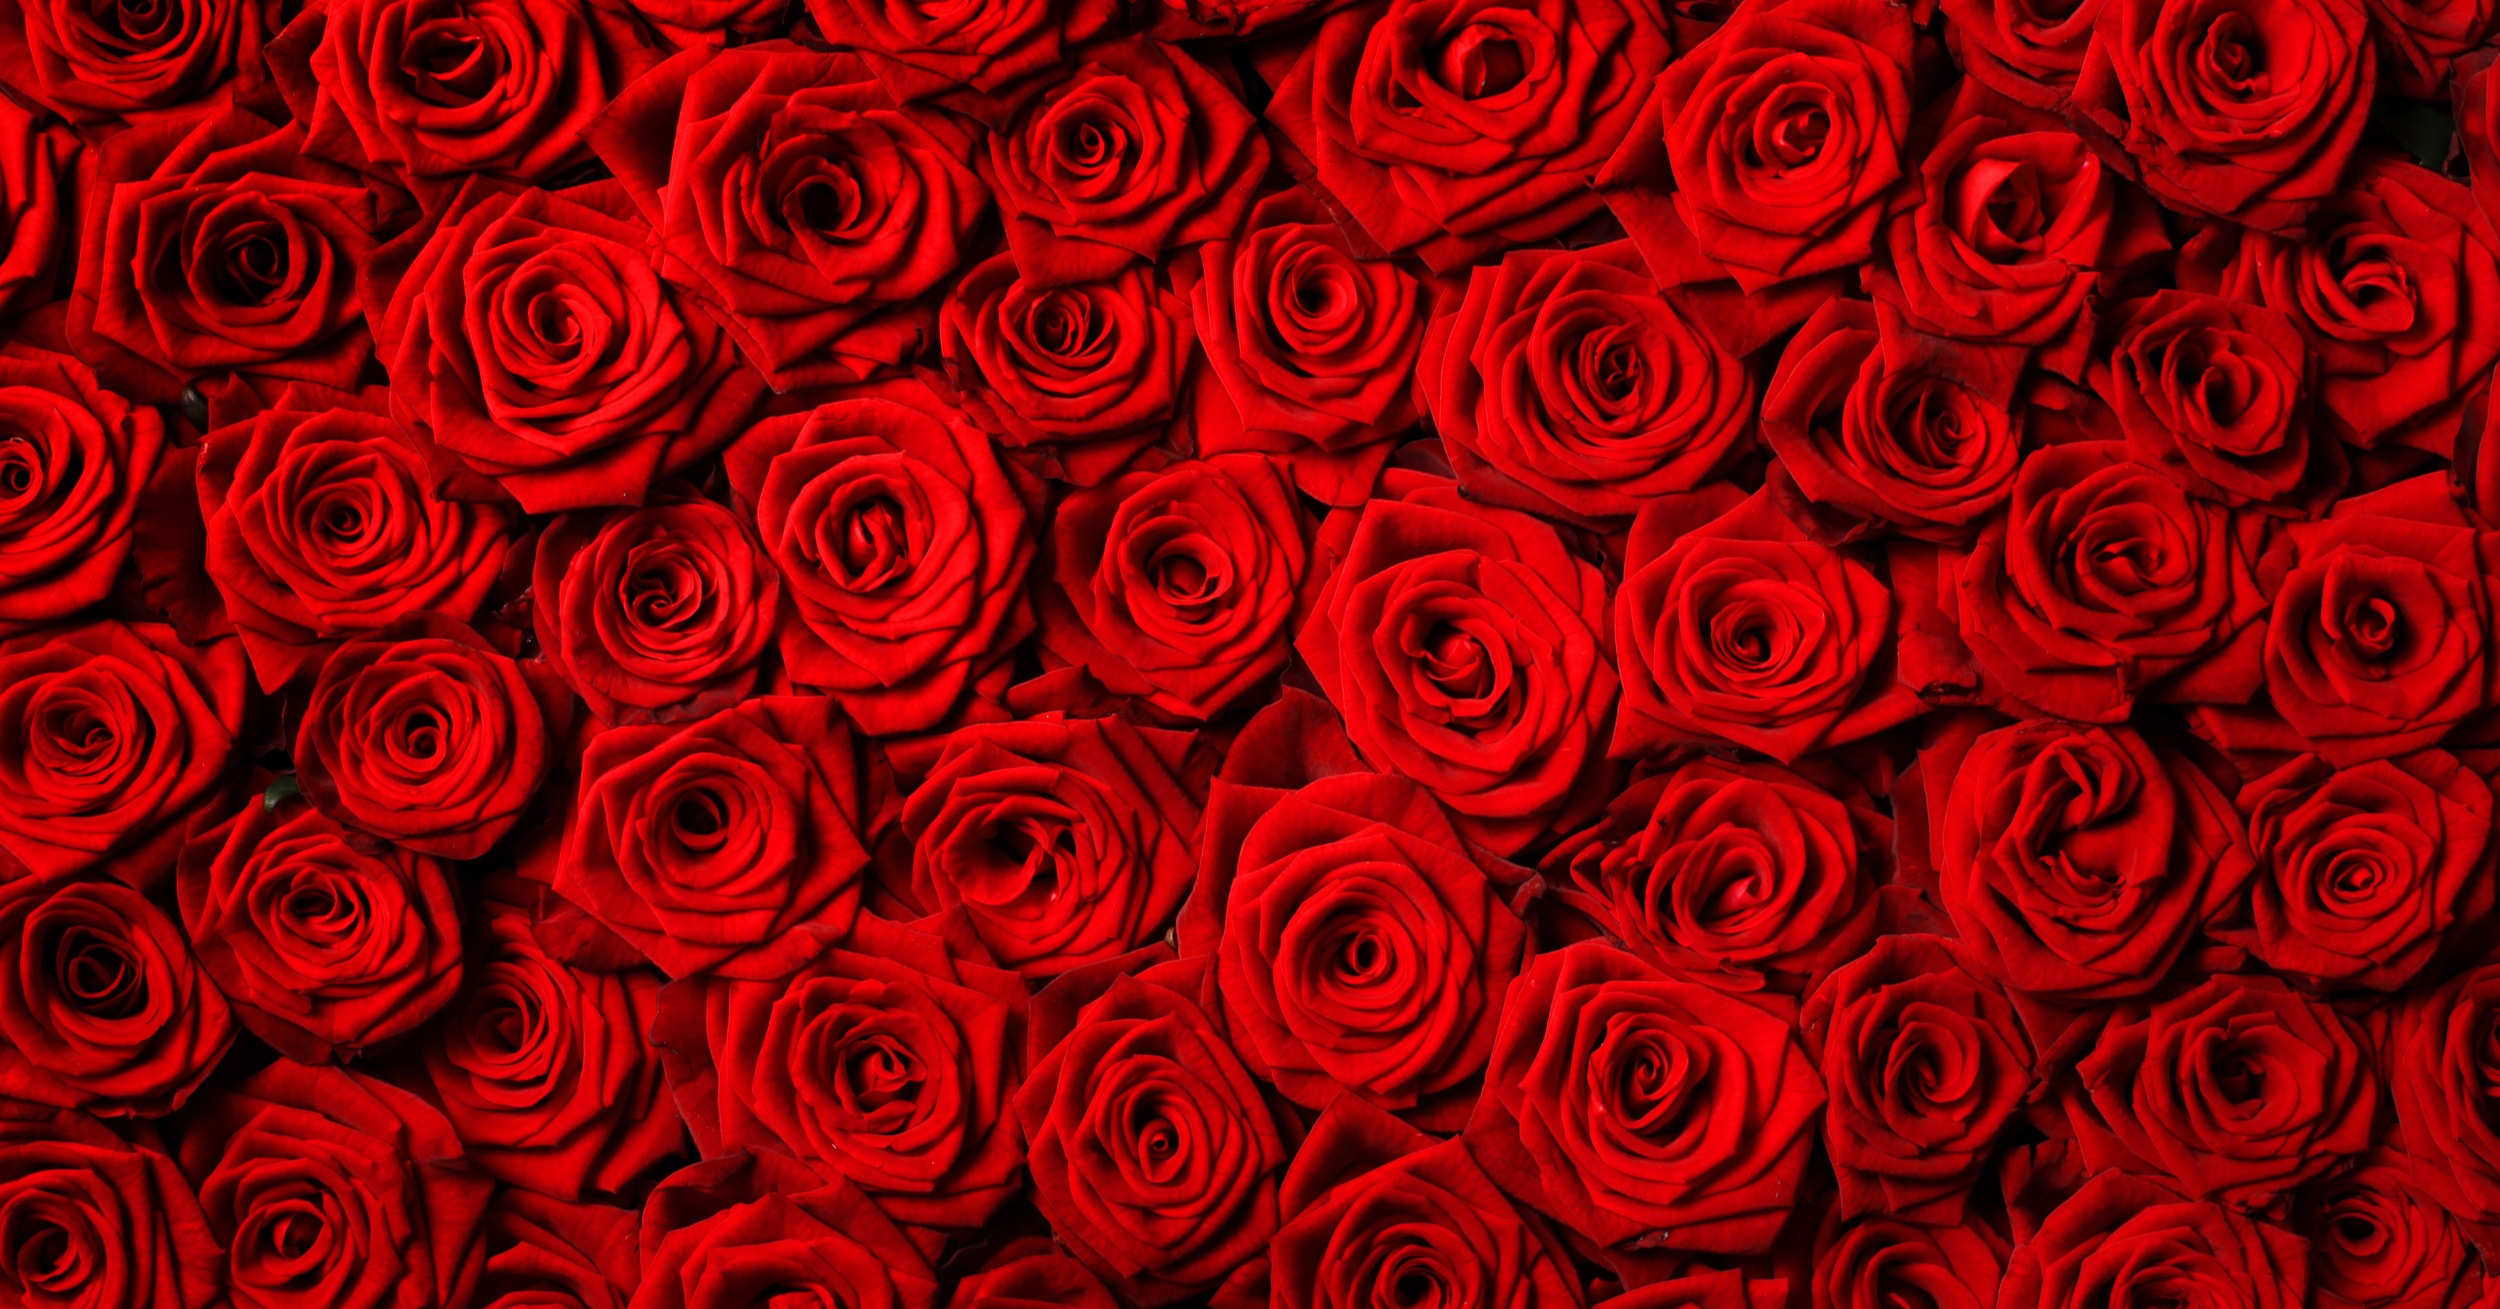 Valentine's Day: Have You Ordered the Flowers You Will Need?